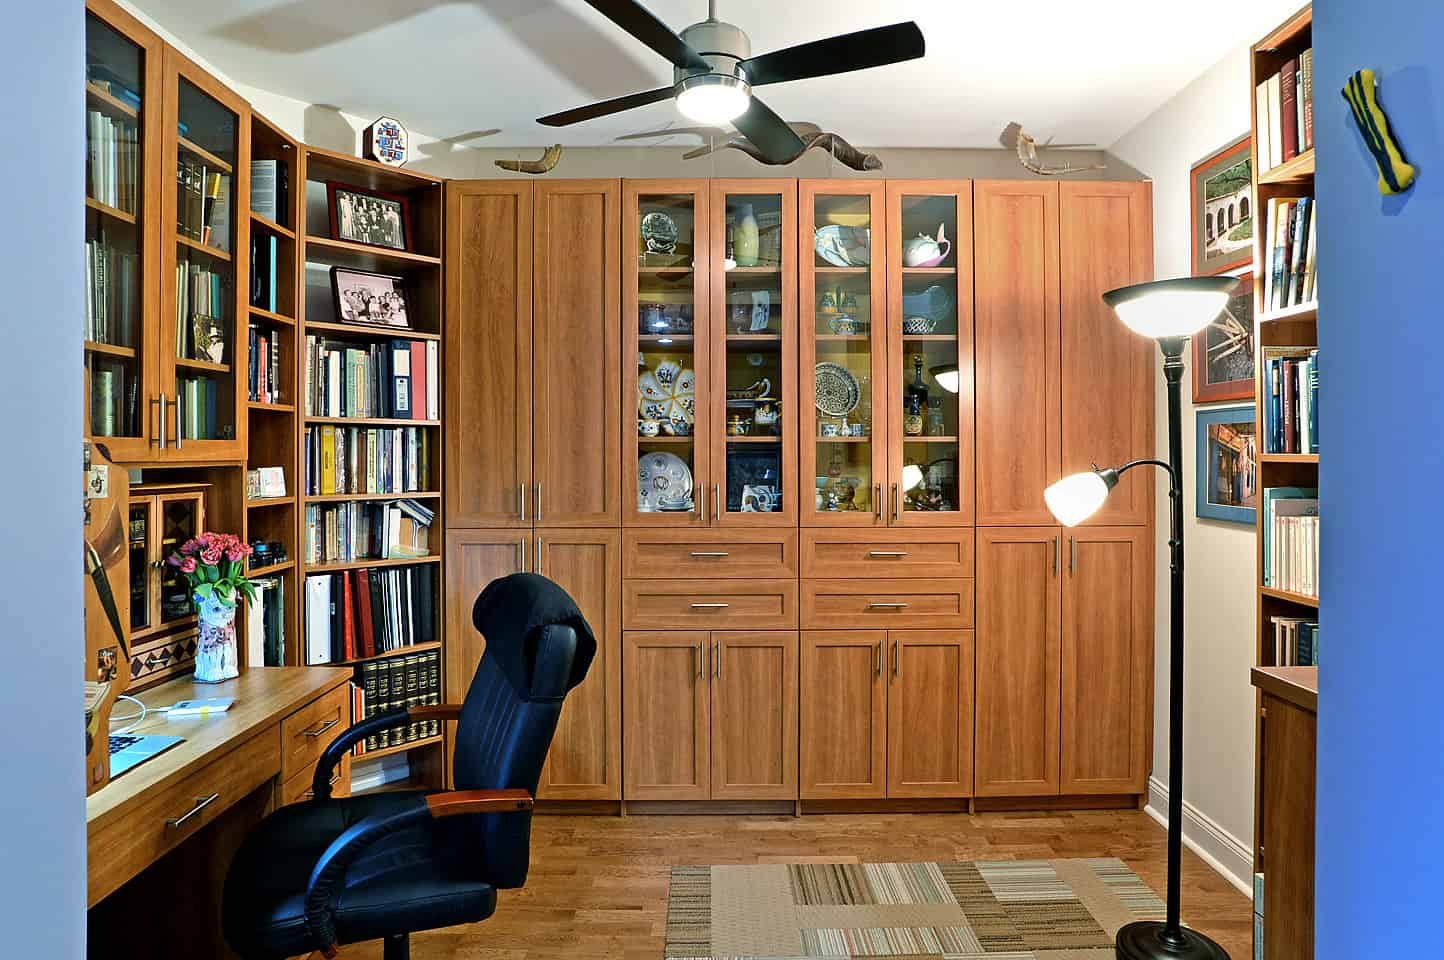 Medium-sized home office with floor to ceiling custom cabinetry and built-in desk.